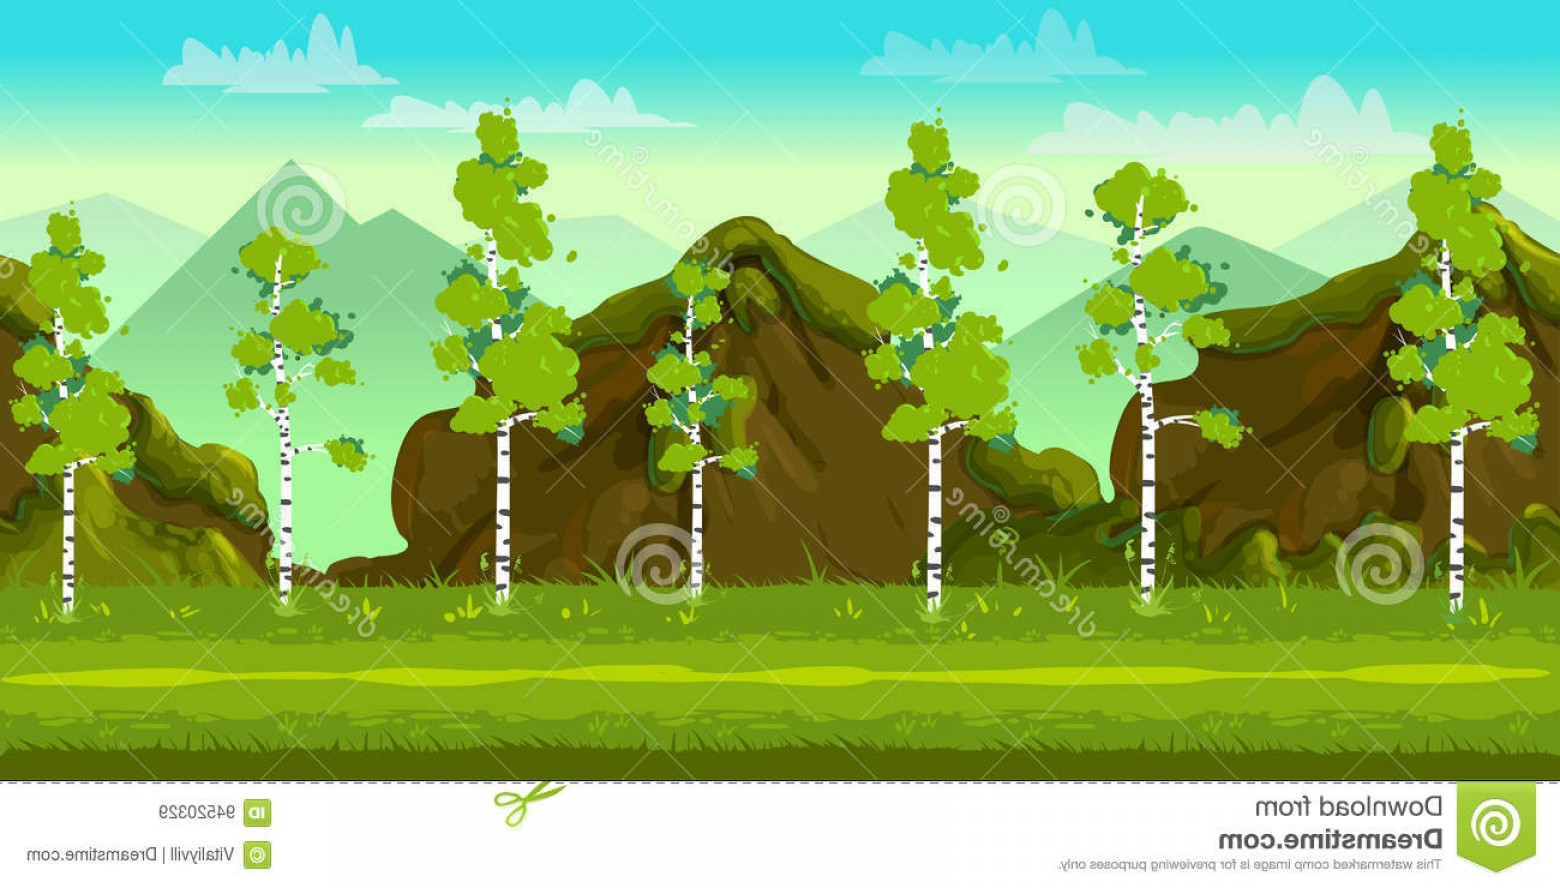 Vector Applications On Computers: Stock Illustration Forest Stones D Game Landscape Games Mobile Applications Computers Vector Illustration Your Design Ready Image